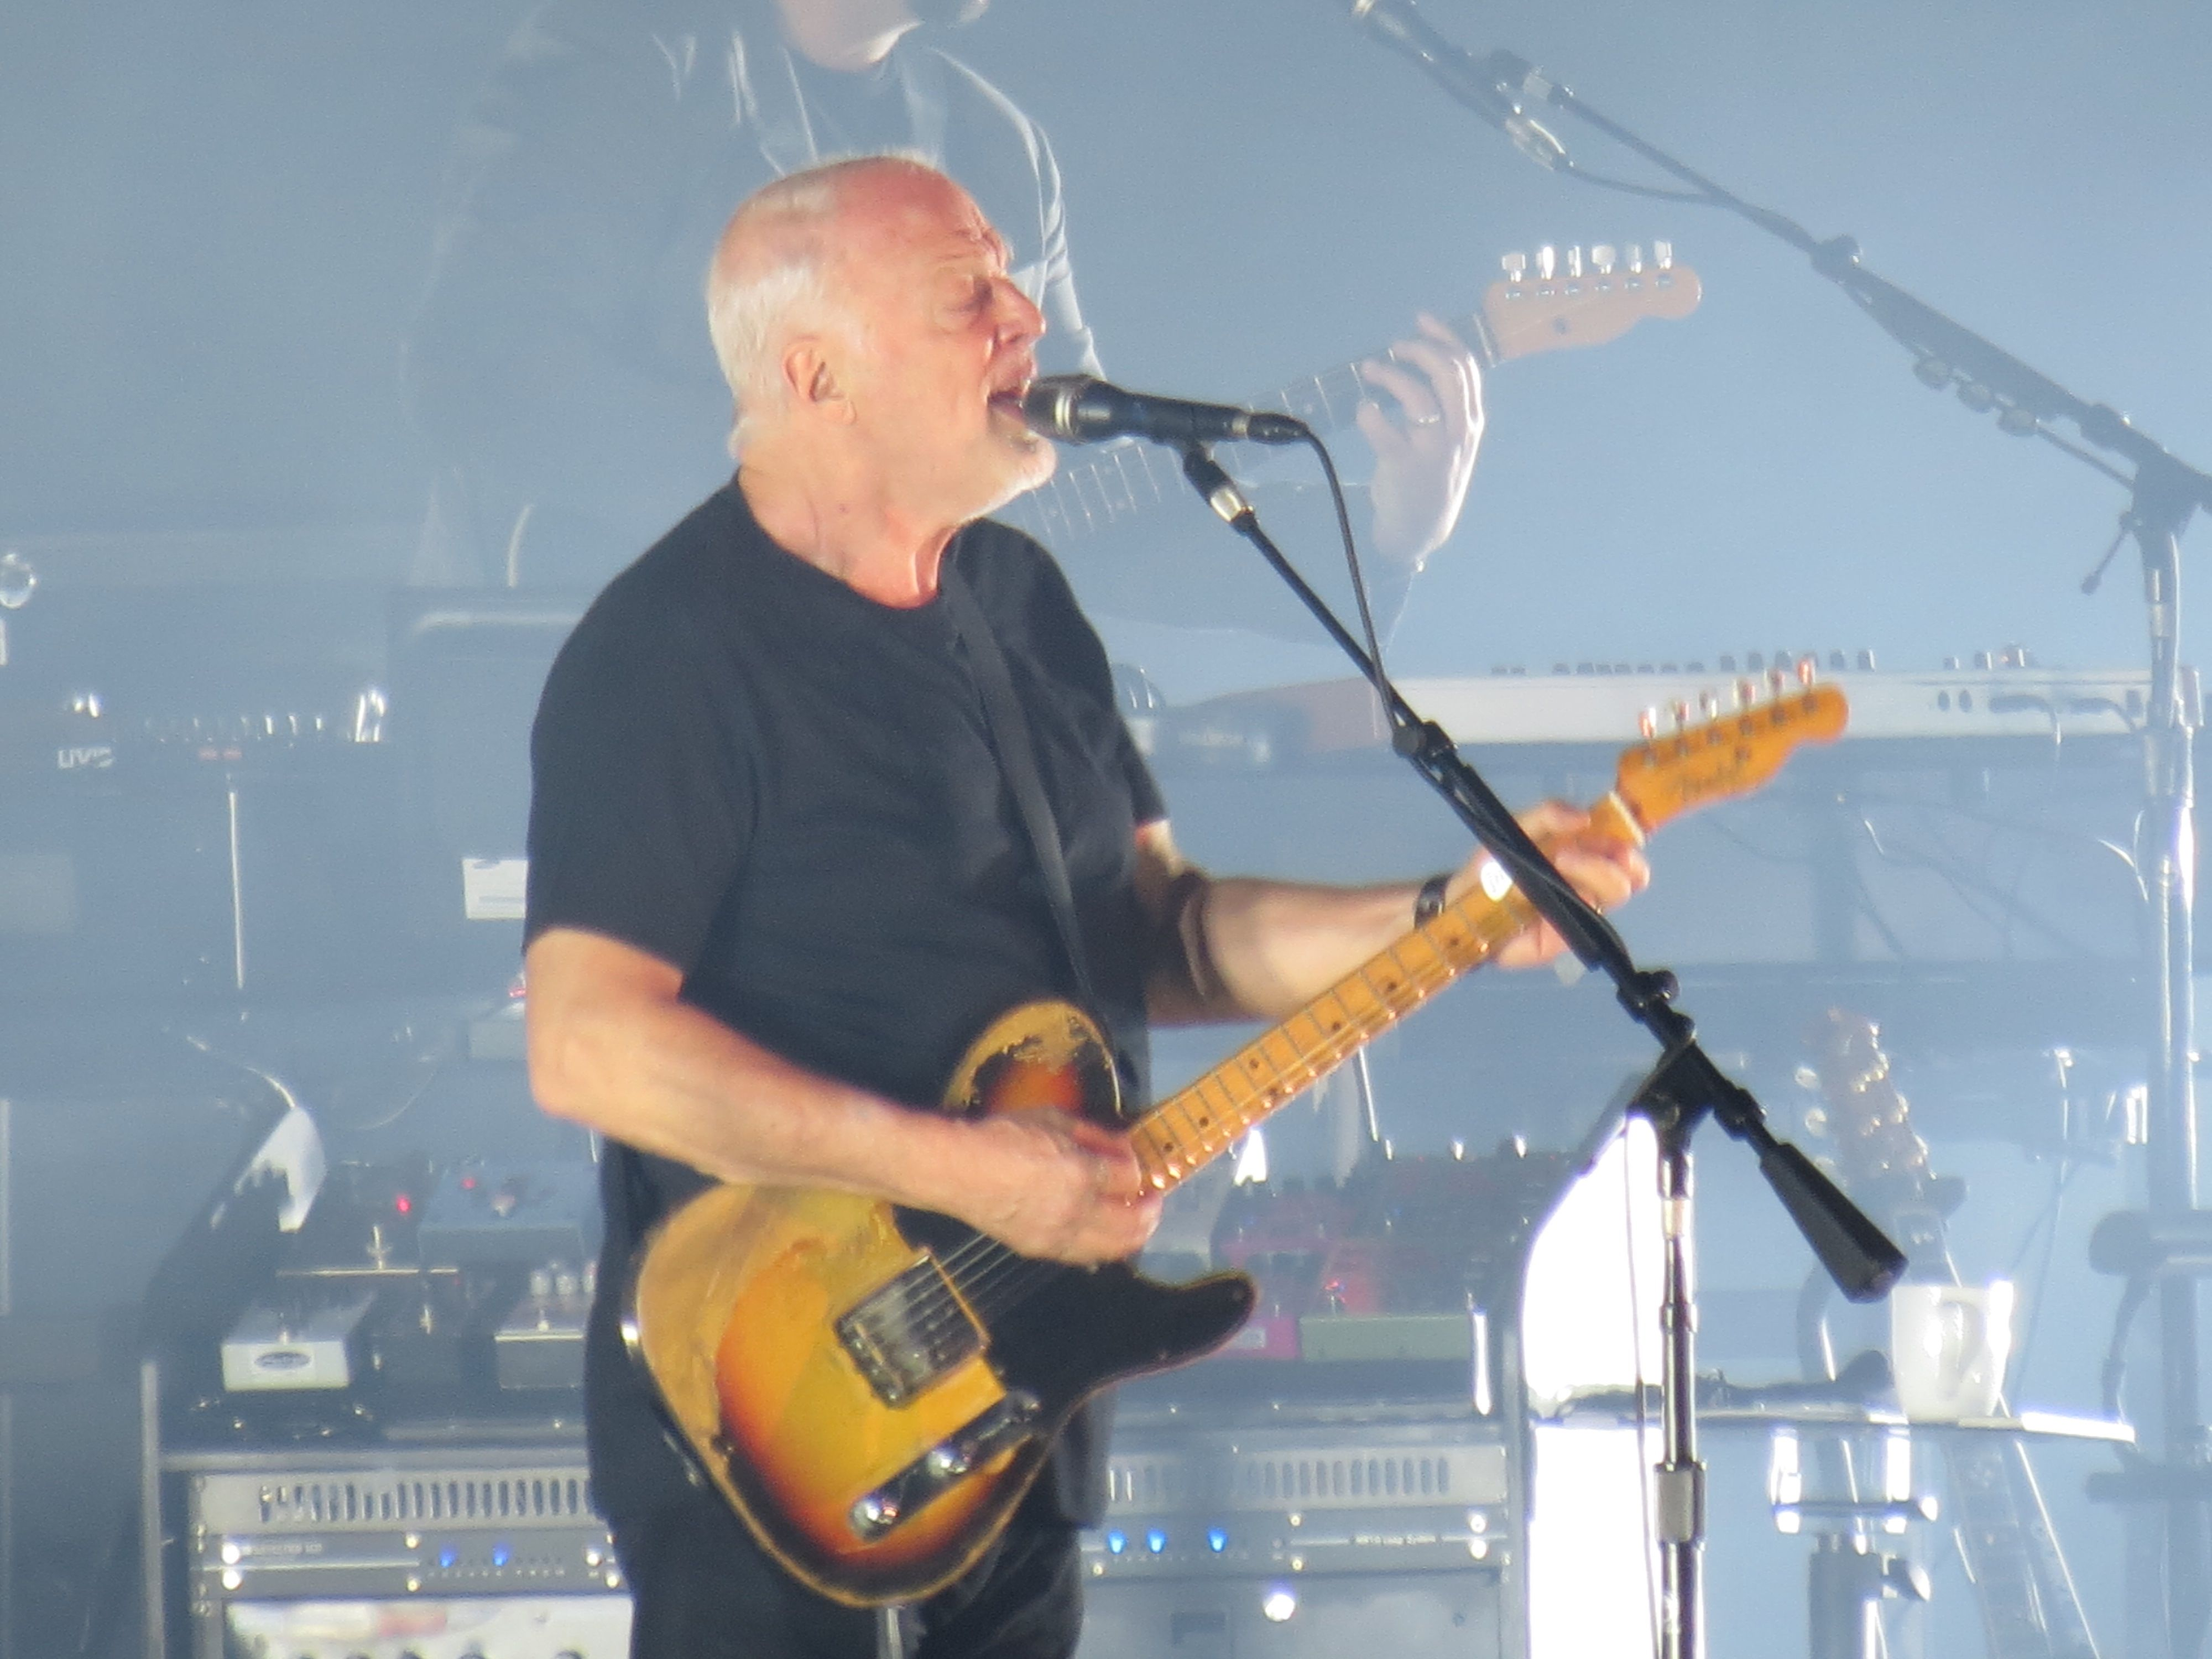 pink floyd s david gilmour rattle that lo ck world tour 2015 16